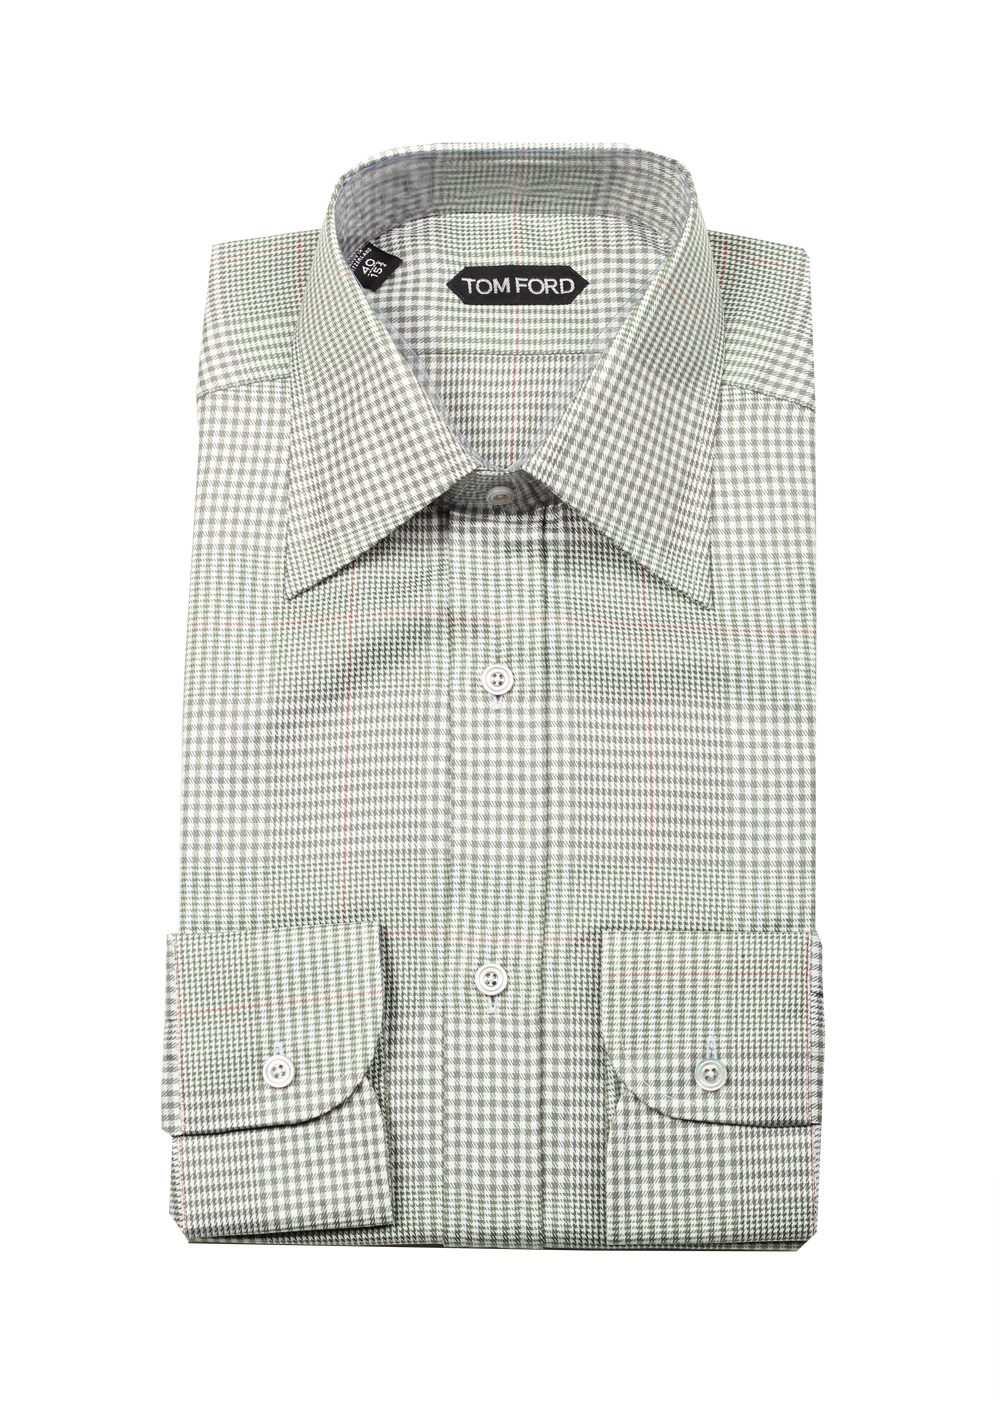 Tom ford checked green dress shirt size 40 15 75 u s for Size 15 dress shirt